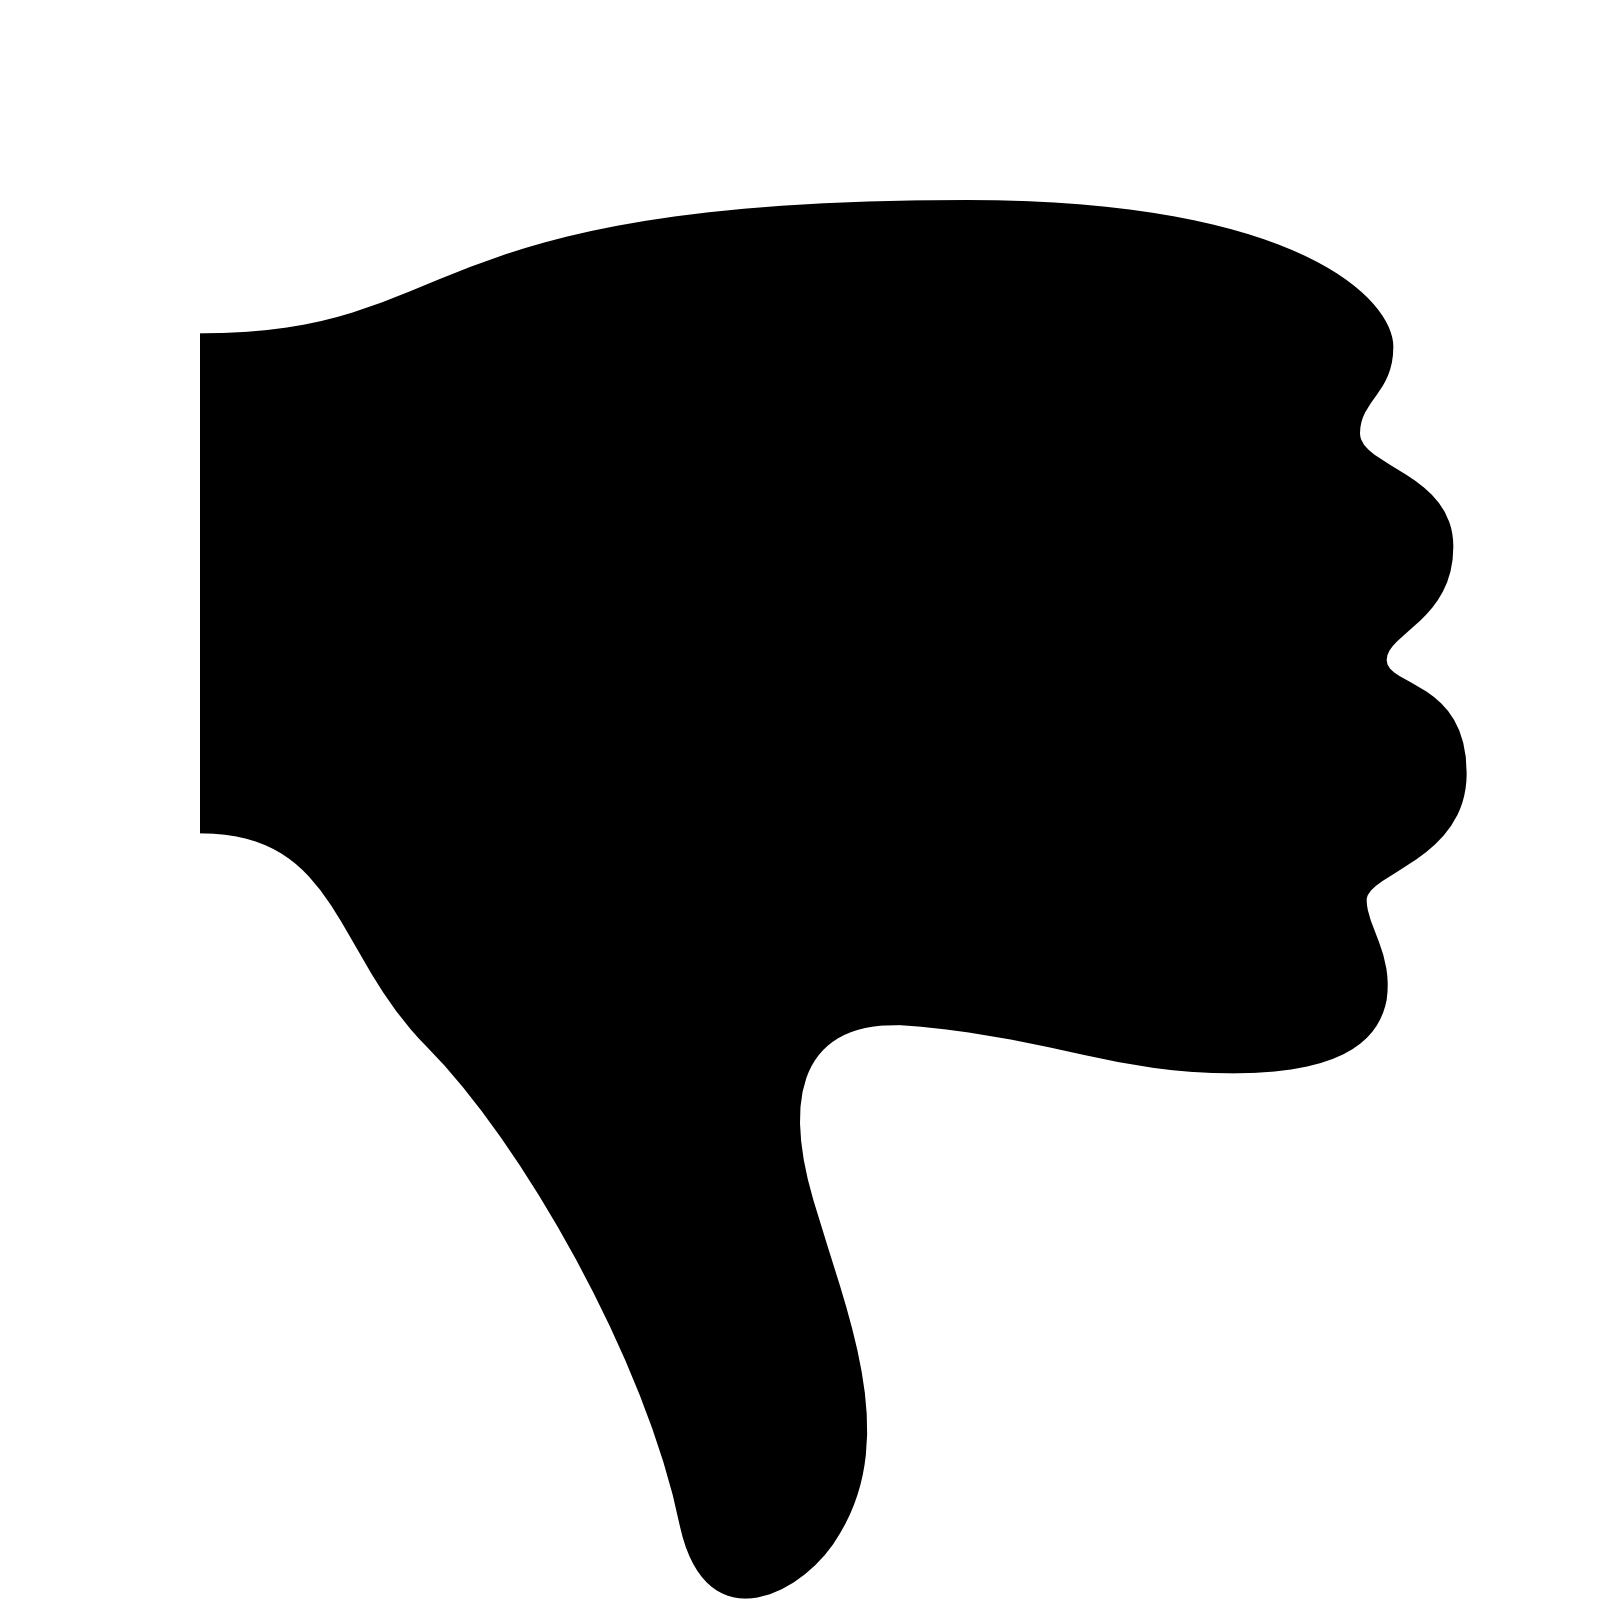 PNG Thumbs Down - 58903